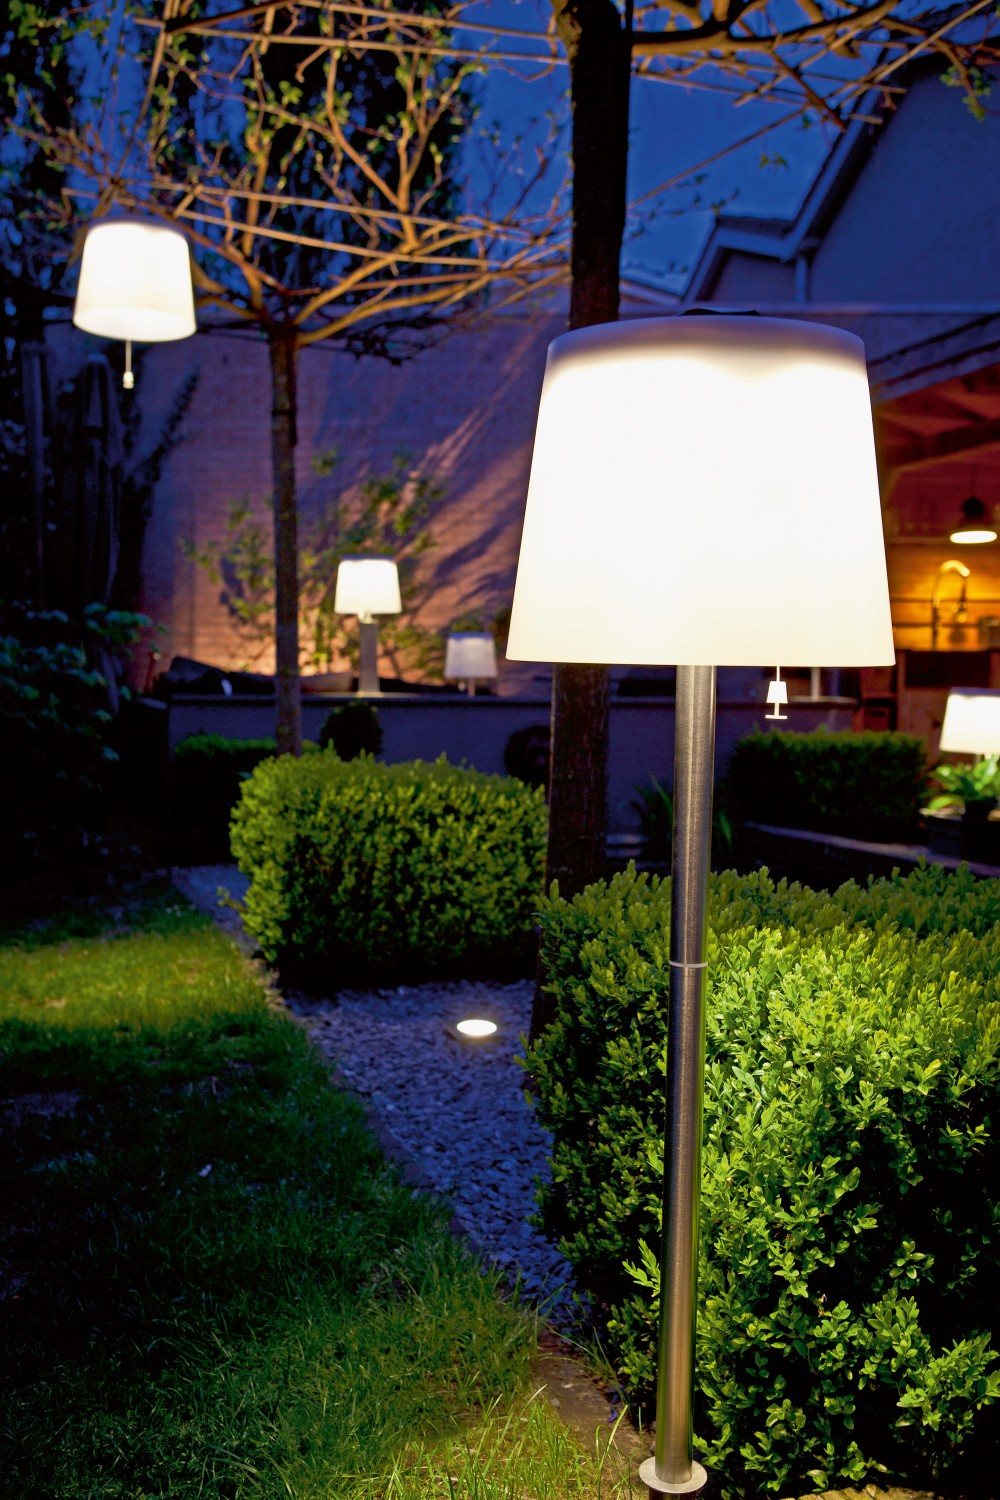 solarlampen garten test startseite design bilder. Black Bedroom Furniture Sets. Home Design Ideas